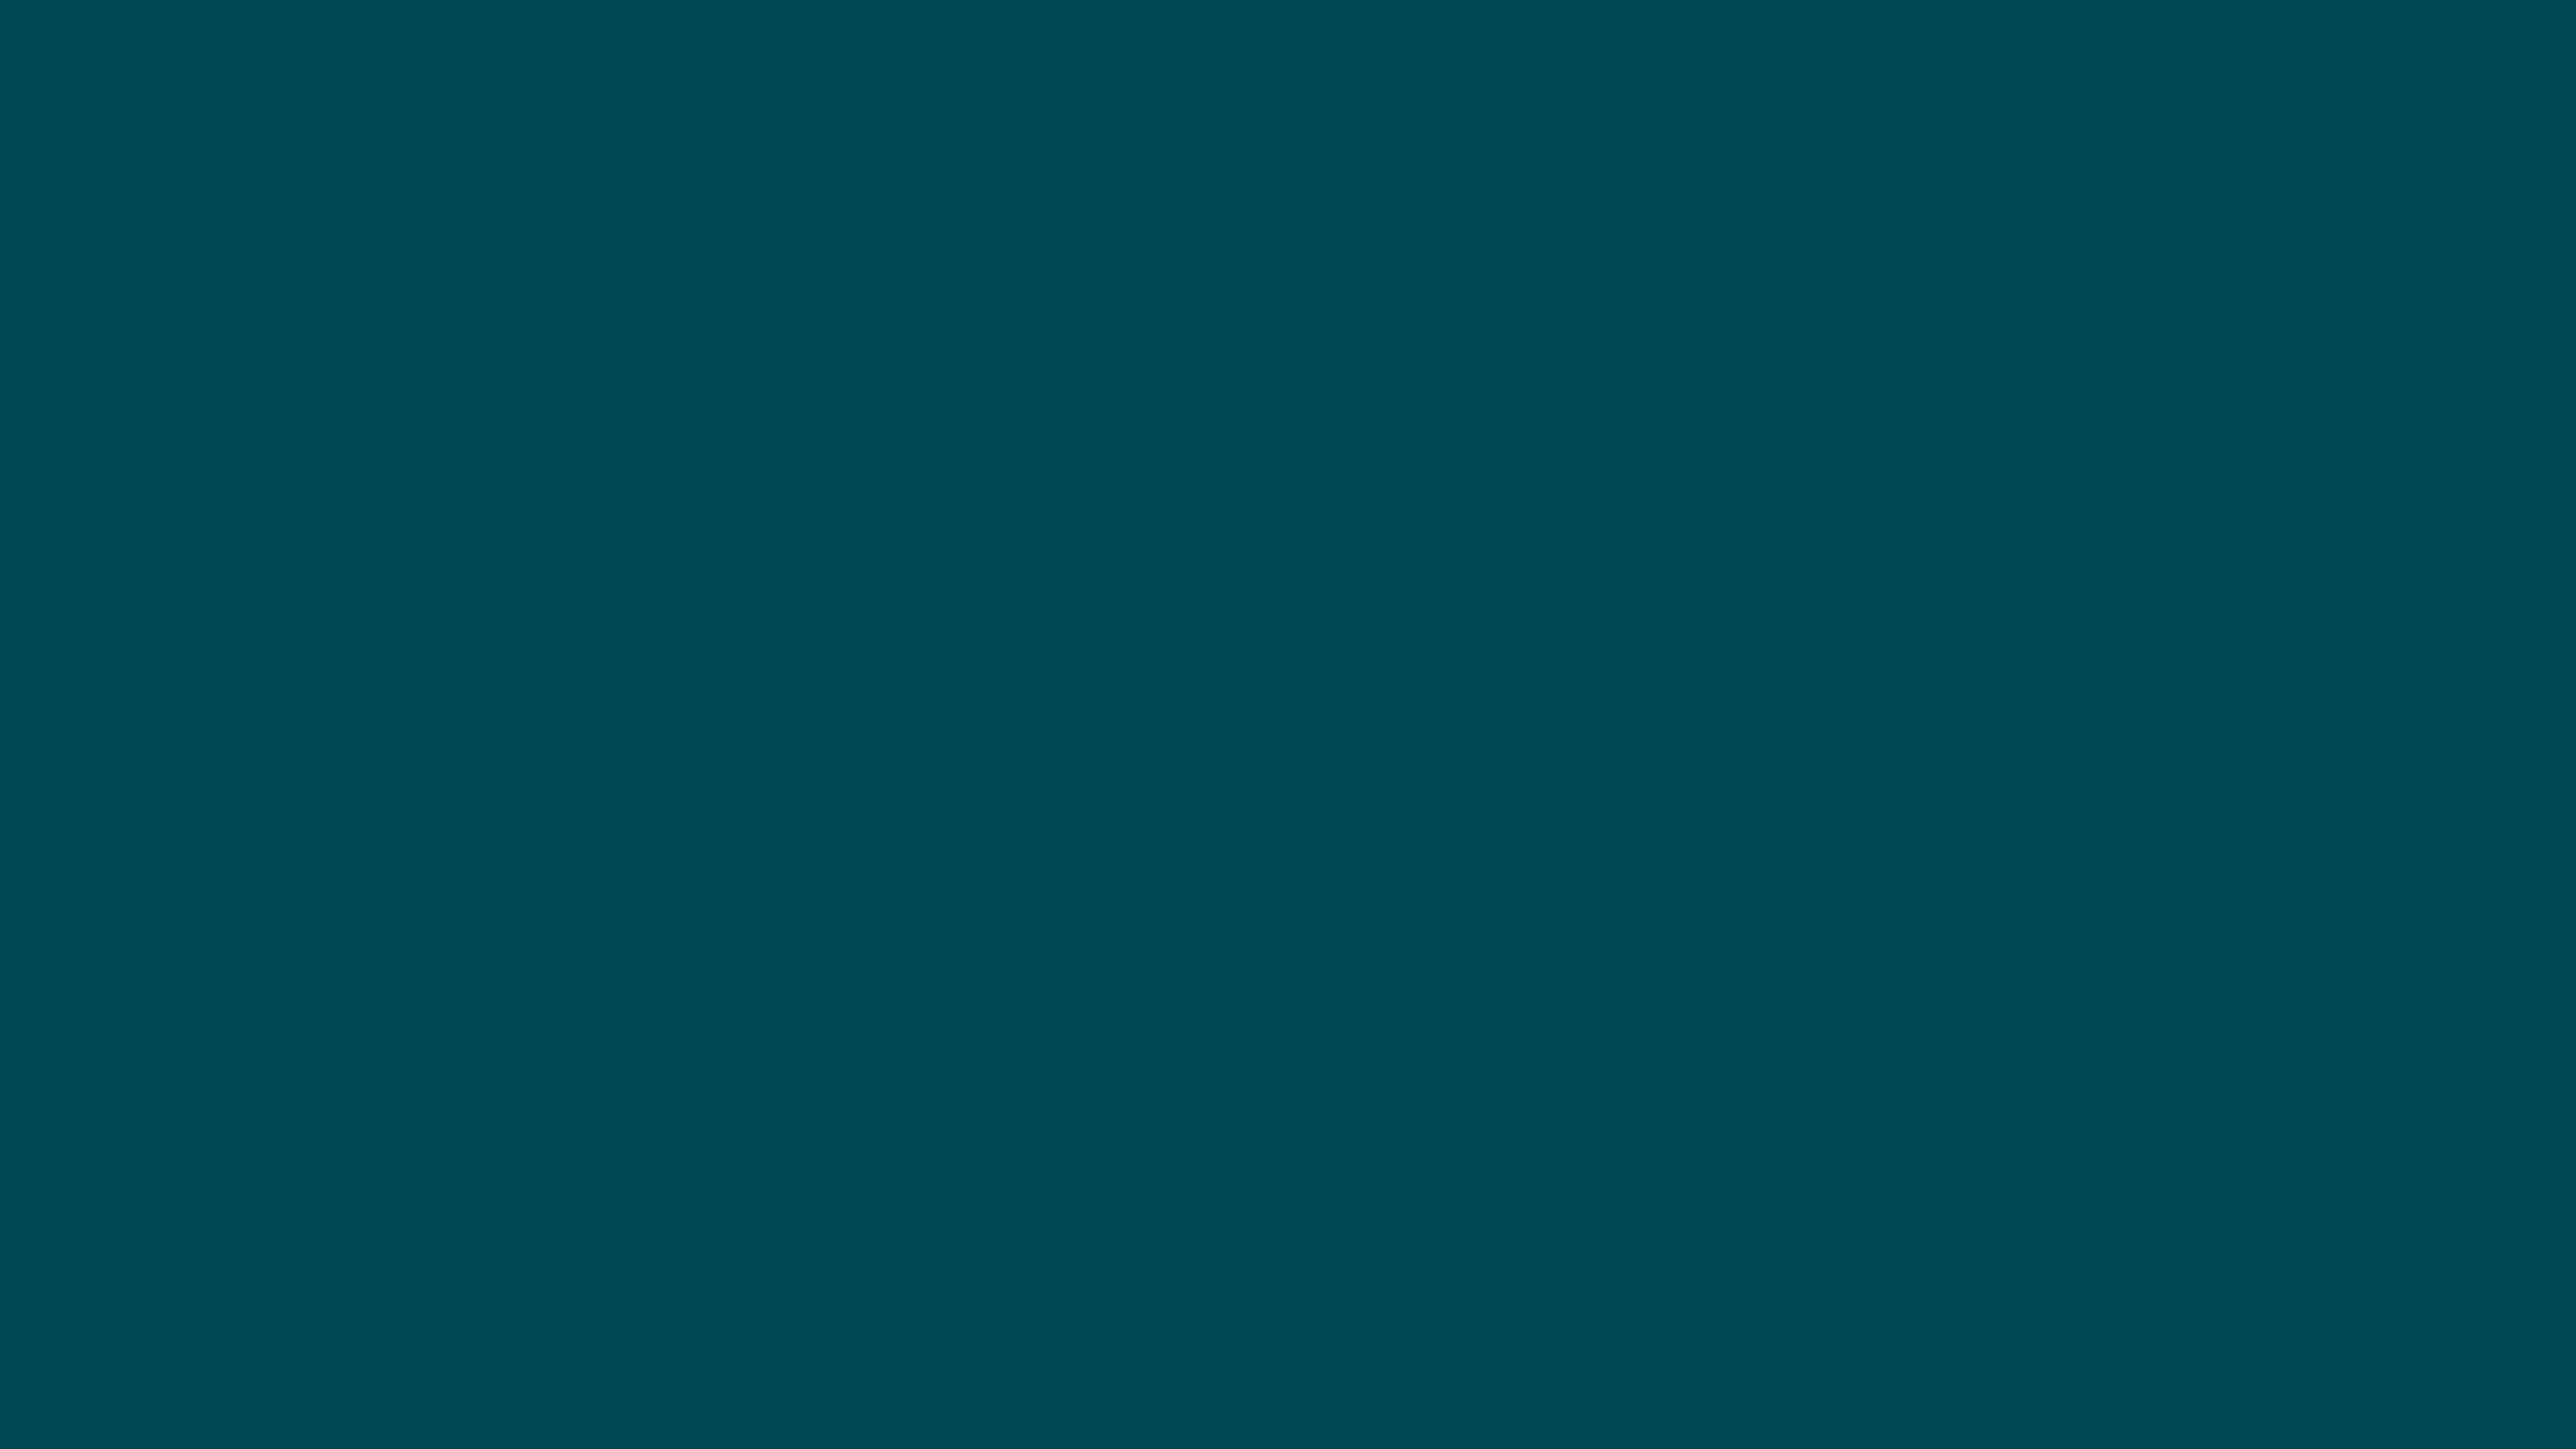 3840x2160 Midnight Green Solid Color Background